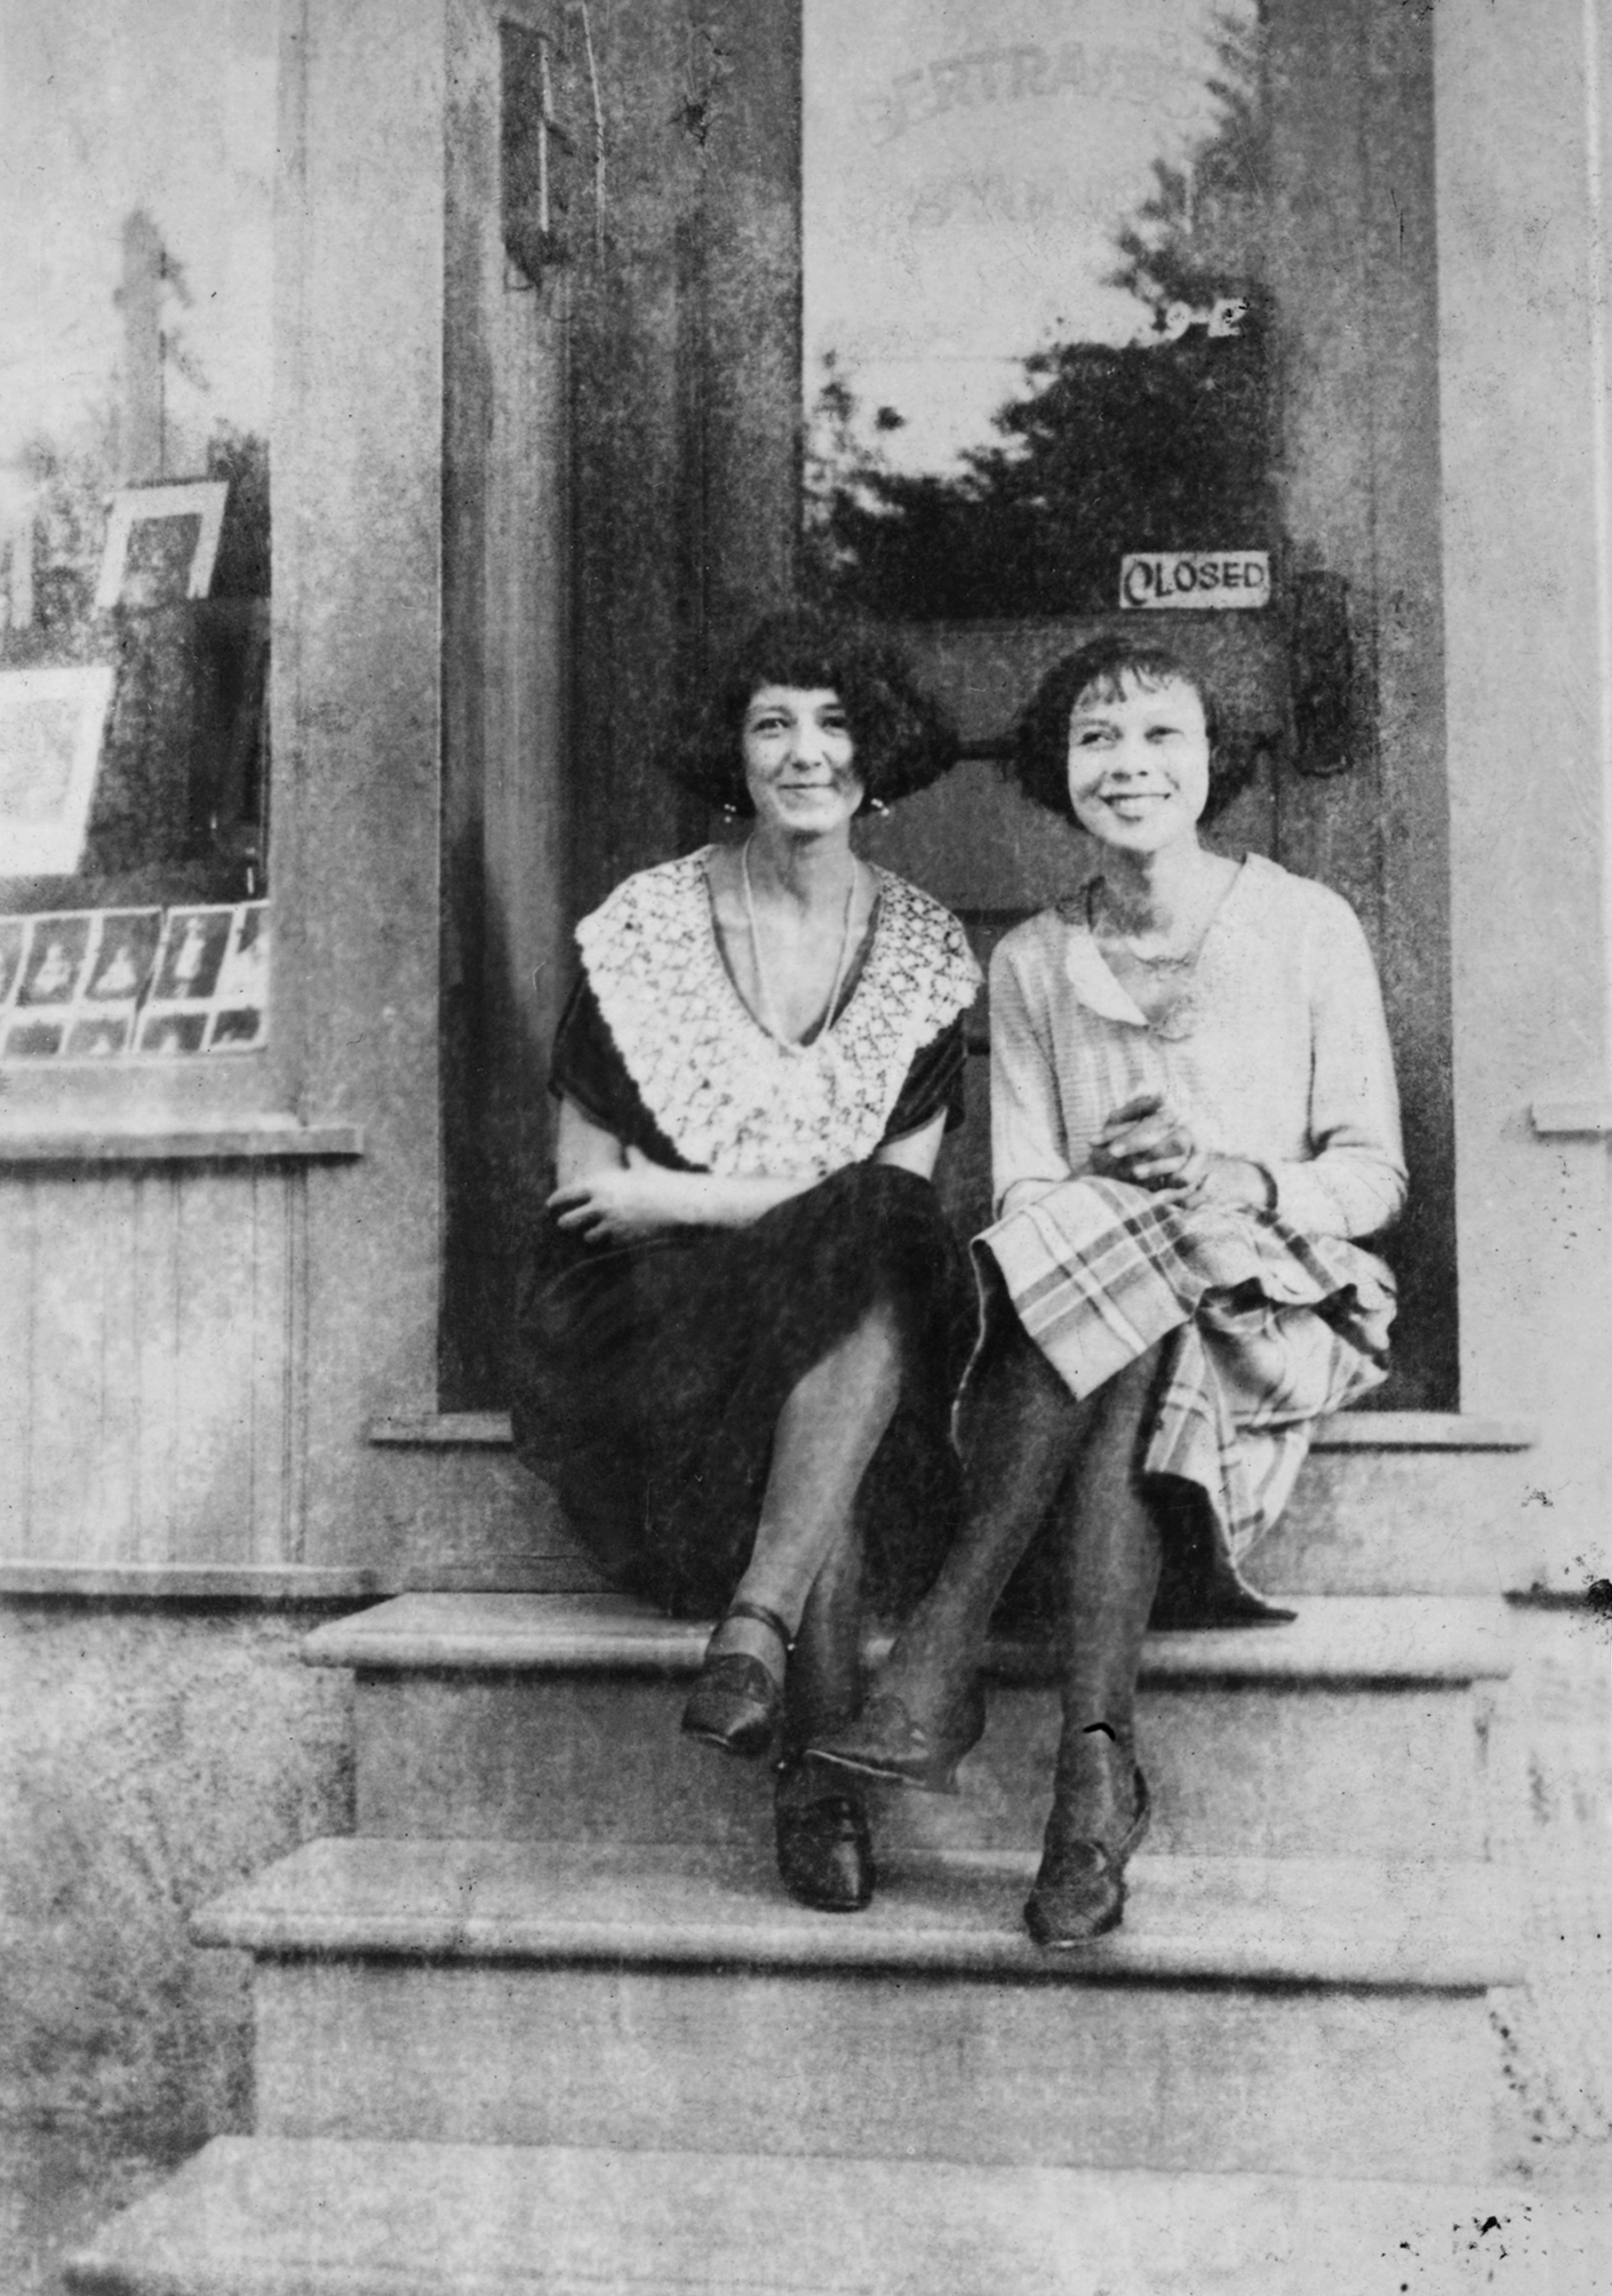 Jeannette Warburg (left) and Daisy Fuller on the steps of Florestine's studio, mid-1920s